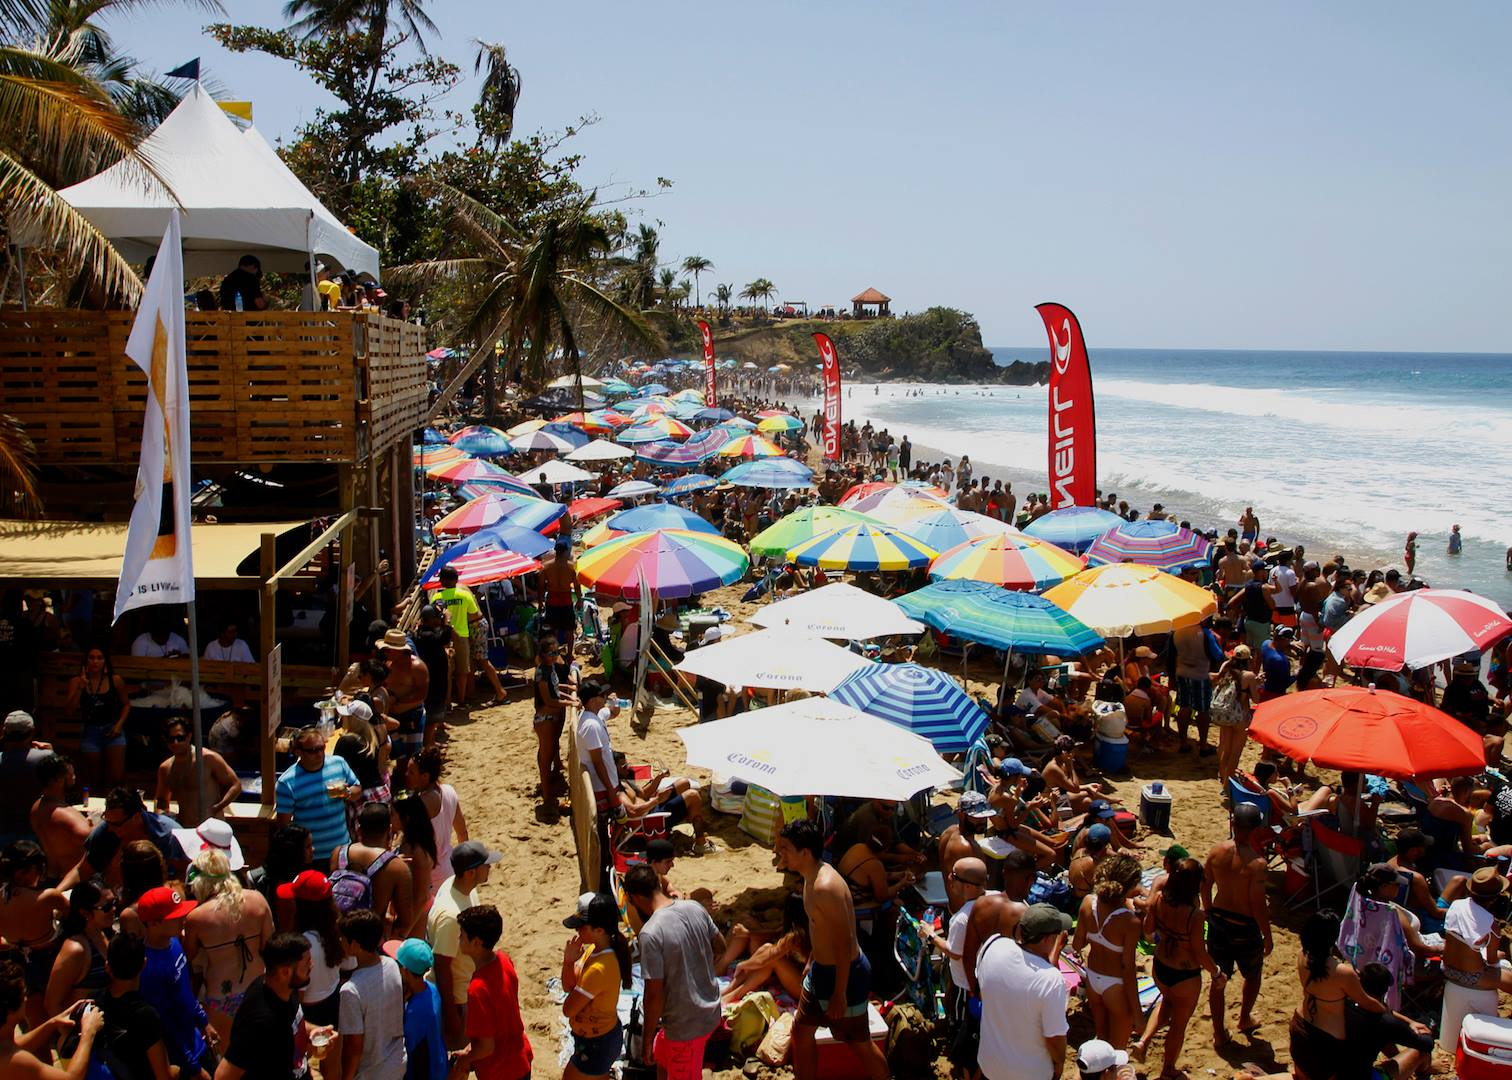 32nd Edition of Corona Extra Pro - Beach Crowd - Photo: Osiris Torres, APSPR©